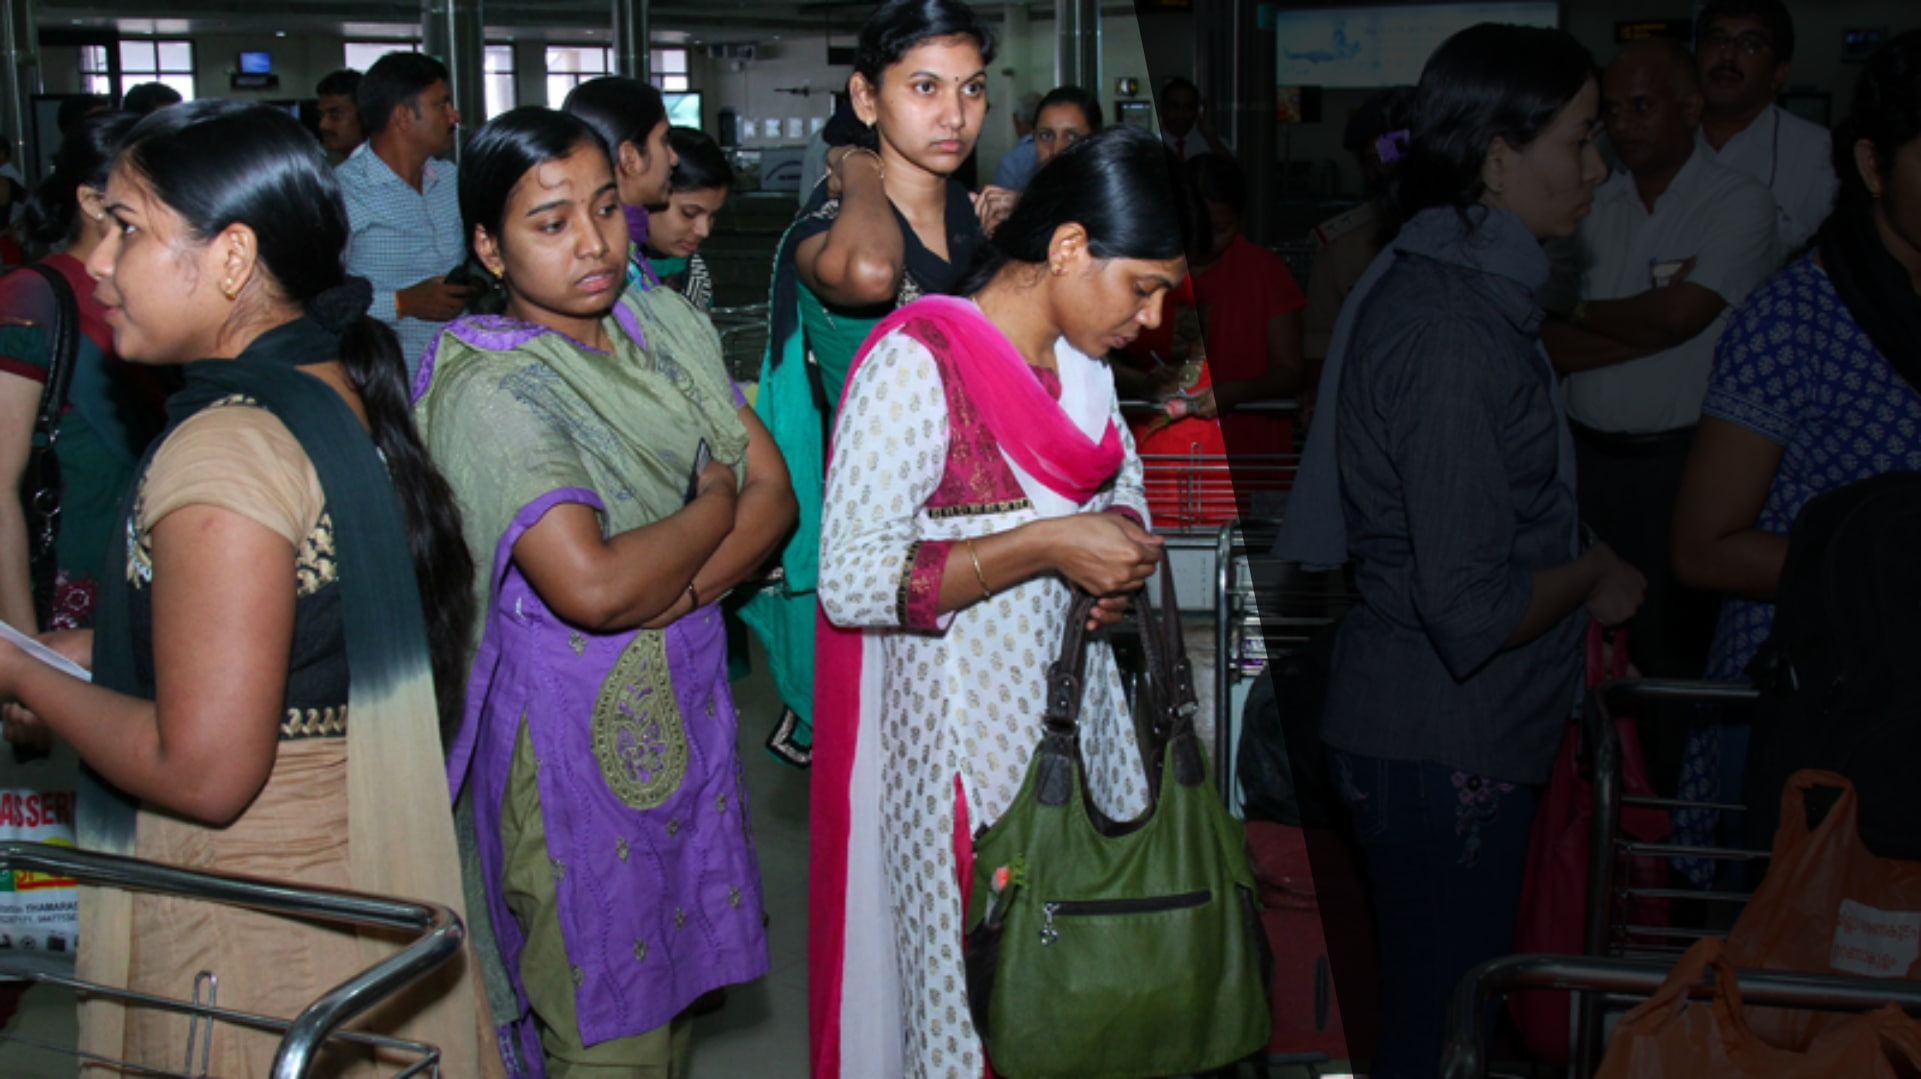 The Promised Land: Kerala's female emigrants key reason behind rise in remittances